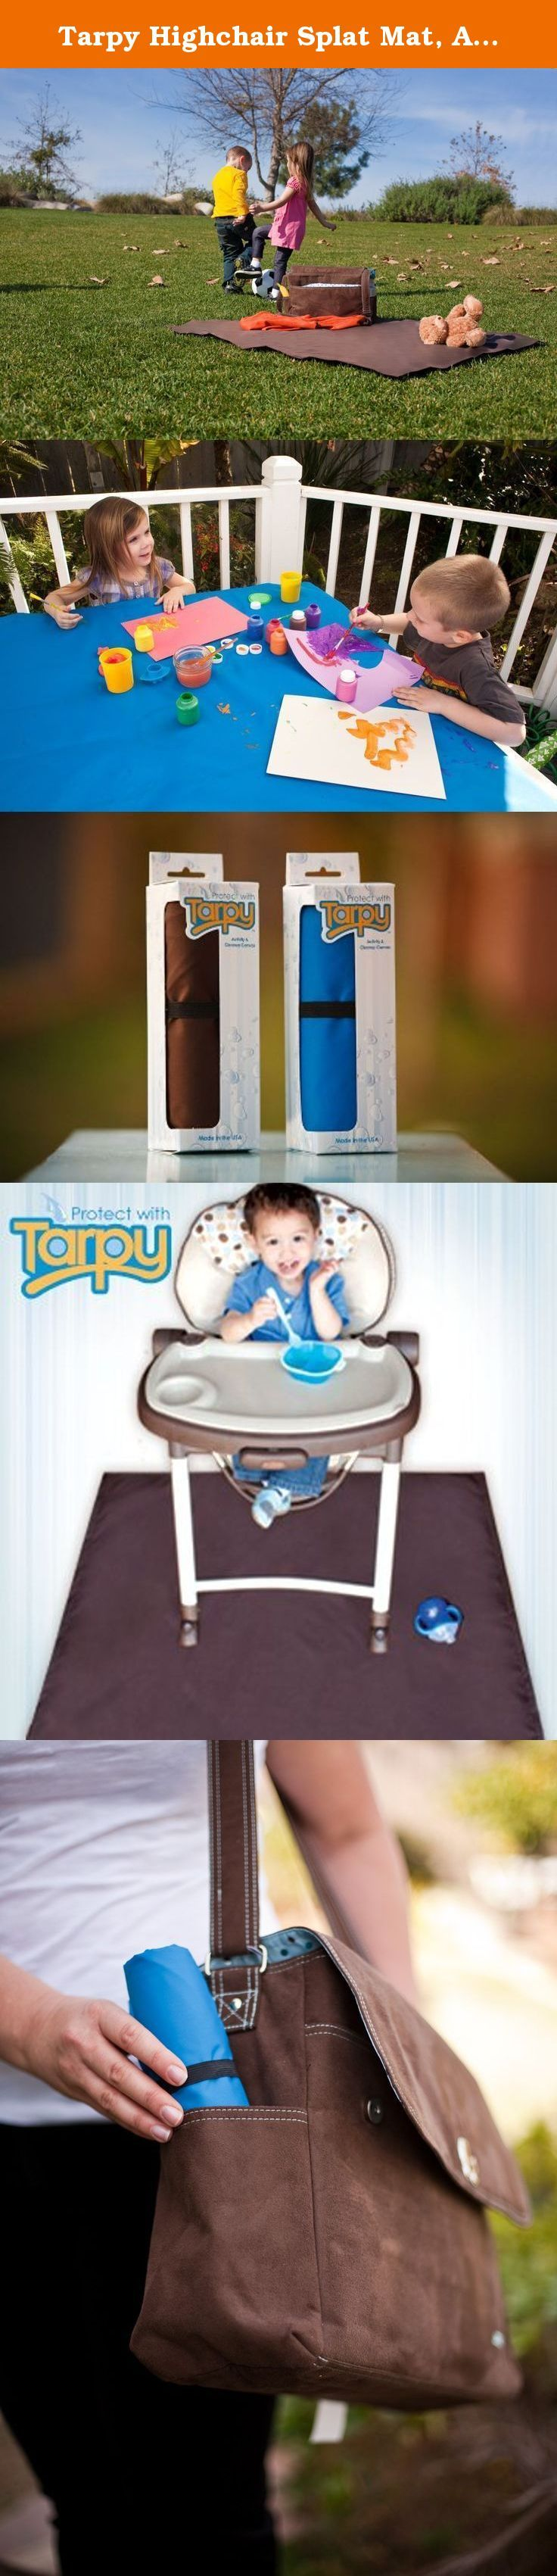 "Tarpy Highchair Splat Mat, Activity & Cleanup Canvas (Chocolate Brown). Protects Floor and other Surfaces from Messes • Place under highchair • Art and activity canvas On the Go • Take to restaurants, visiting and traveling • Outdoor activities - Keep items clean and dry from the ground • Easy compact tote. Just roll and go Easy Cleanup Machine wash or simply wipe with a cloth 44"" x 52"" 100% Nylon with Protective Coating No Vinyl or PVC's Made in the USA."